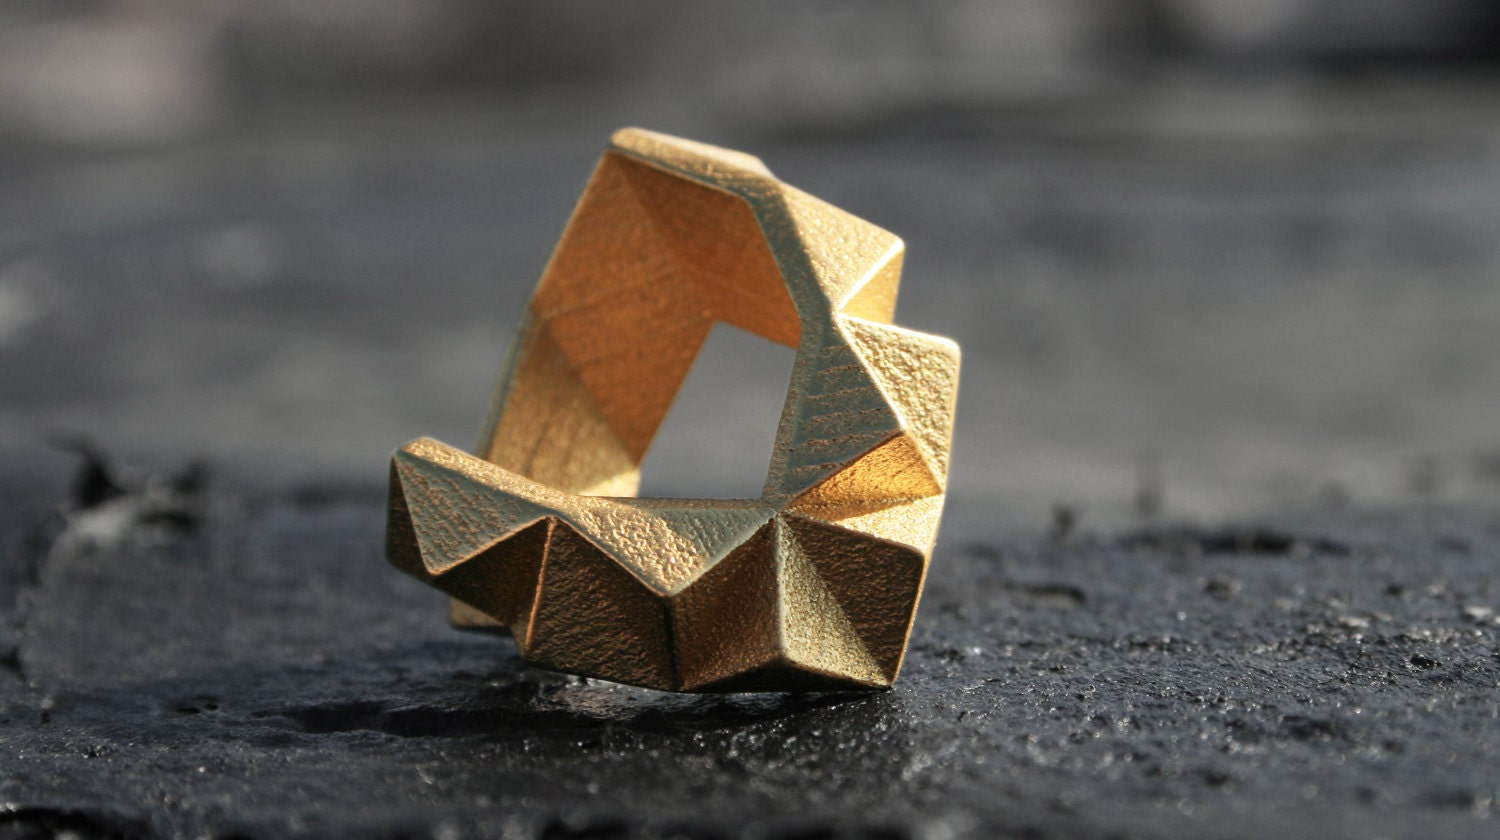 KINETIC - Yellow gold faceted modern geometric 3D printed chunky ring - ButterscotchofBK